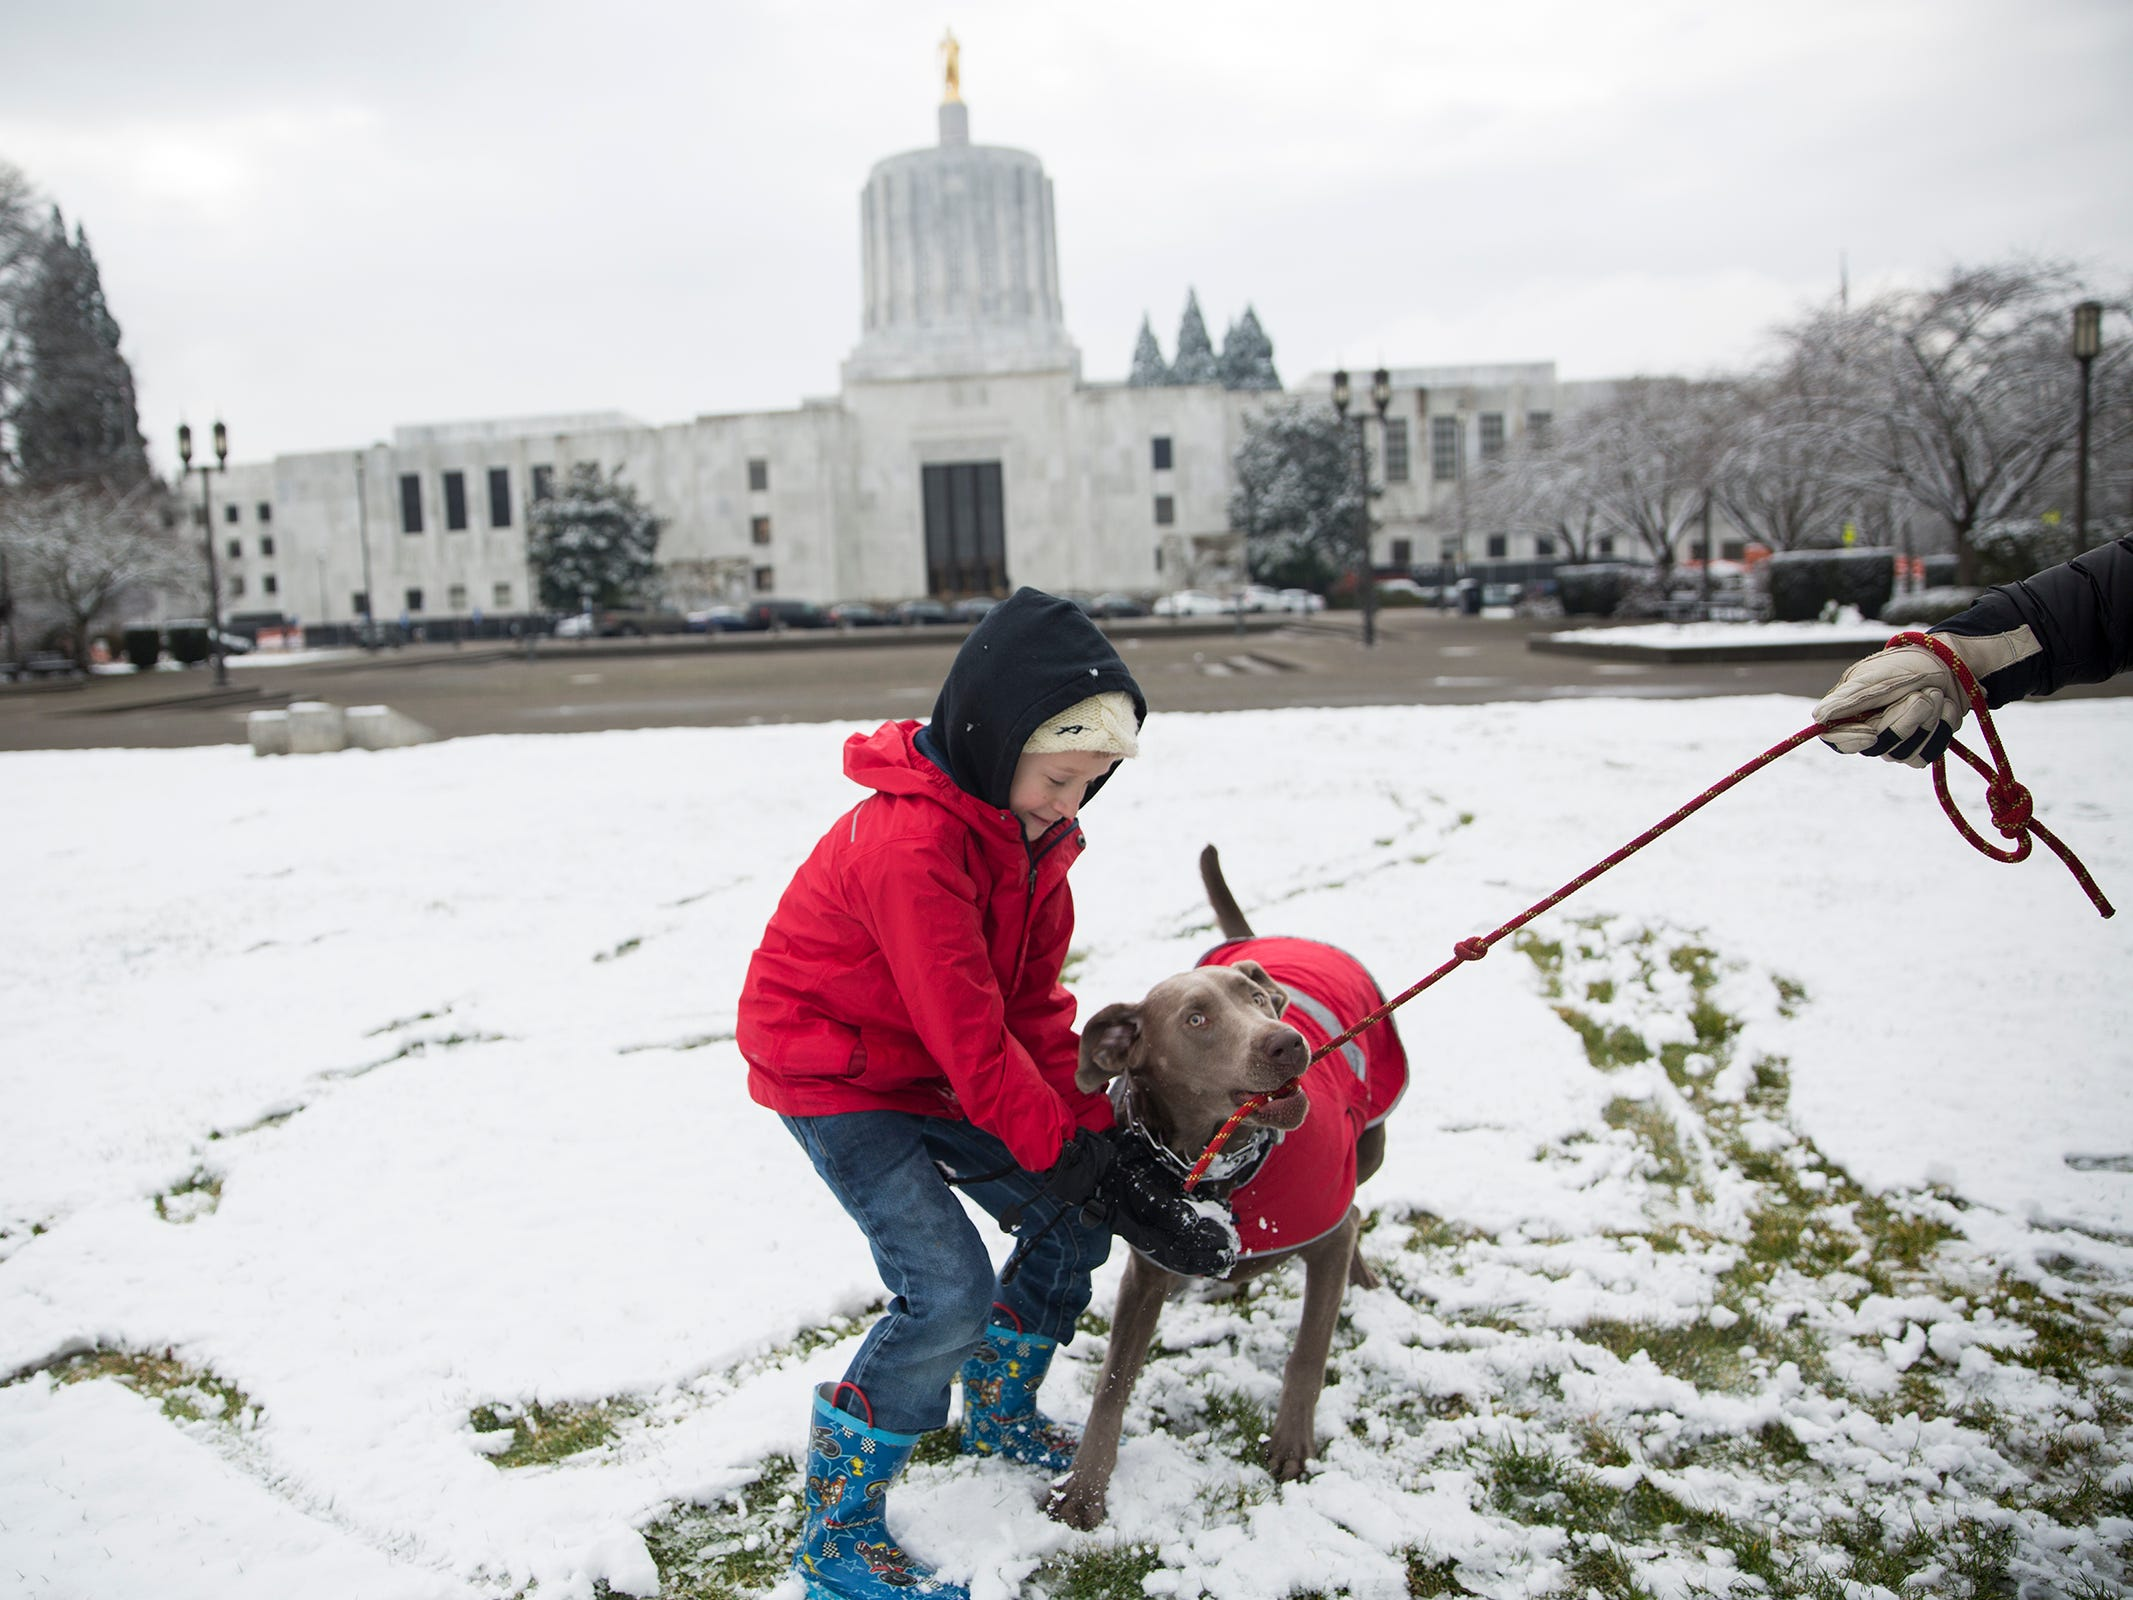 Max Mosquera, 7, plays with his dog Luna in the snow outside the Oregon State Capitol in Salem on Tuesday, Feb. 5, 2019.